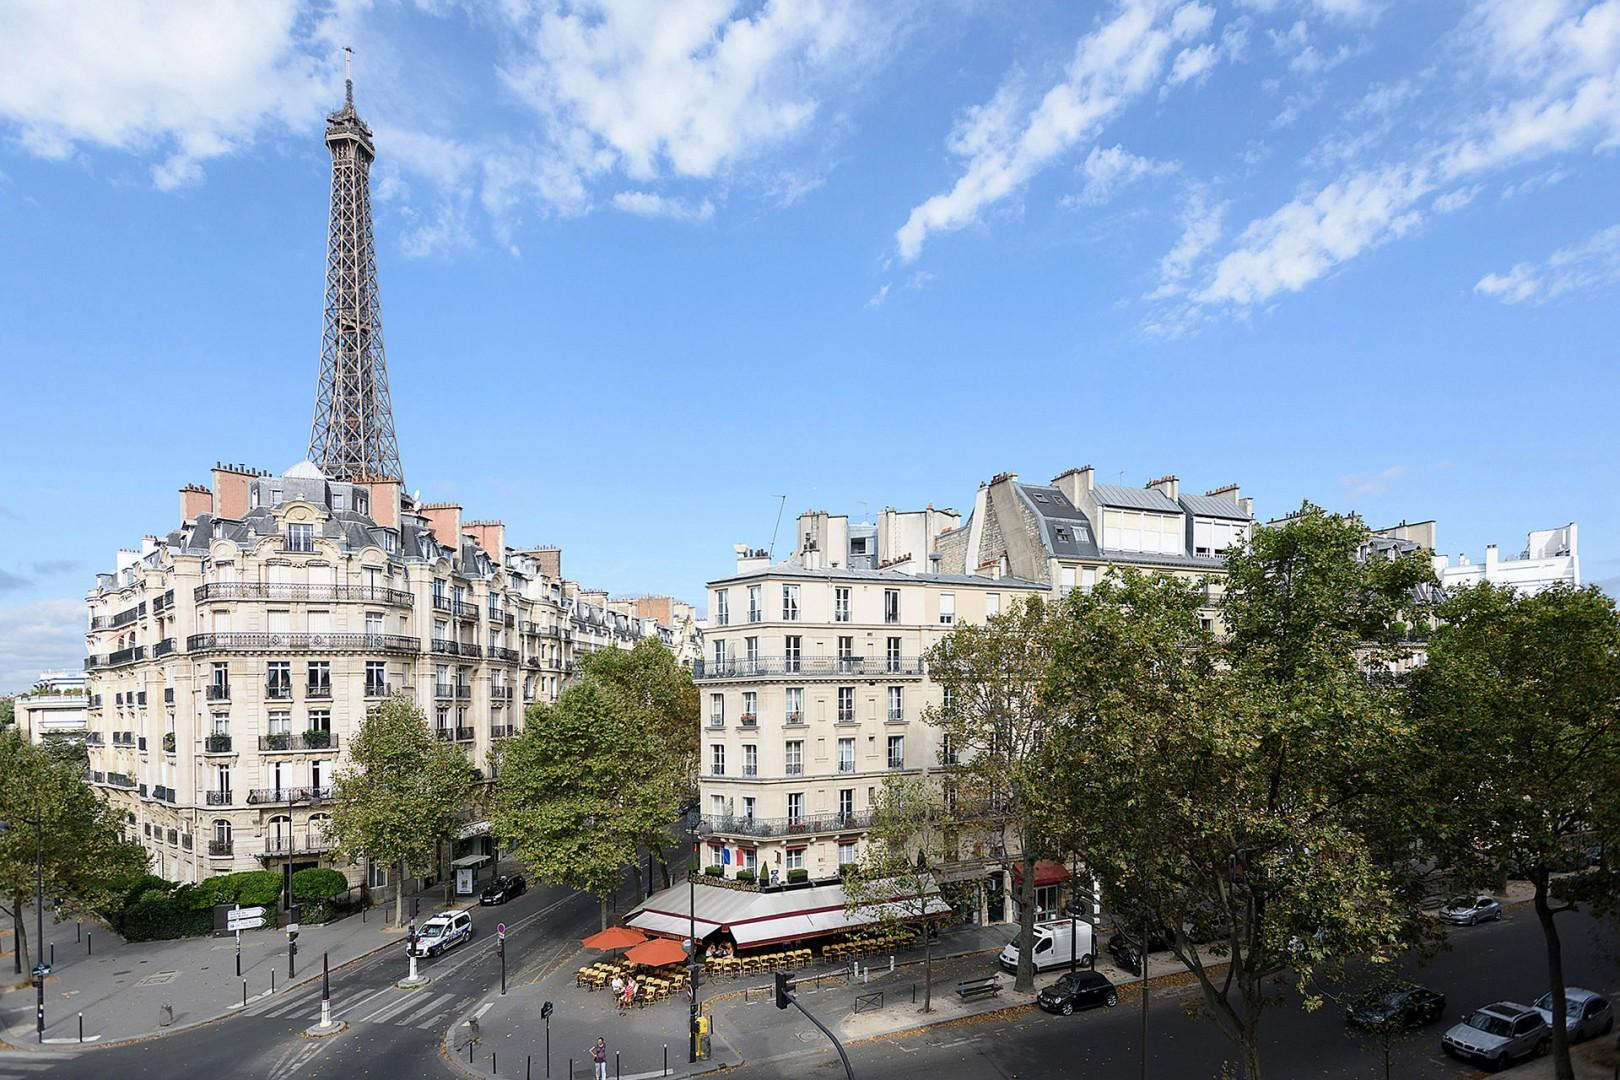 Enjoy stunning views of surrounding buildings and the Eiffel Tower.